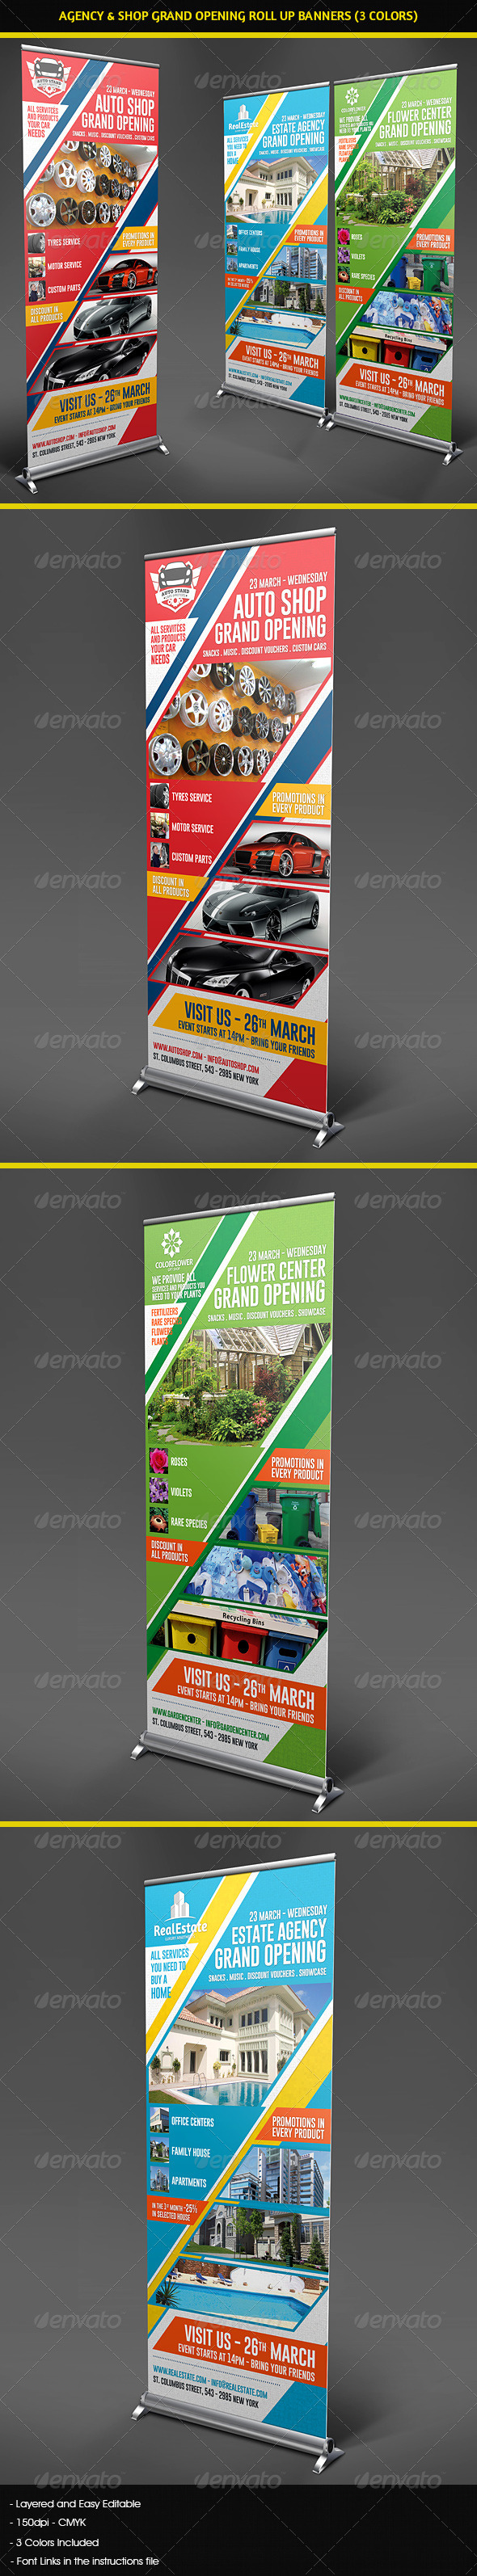 GraphicRiver Agency & Shop Grand Opening Roll Up Banners 7737053